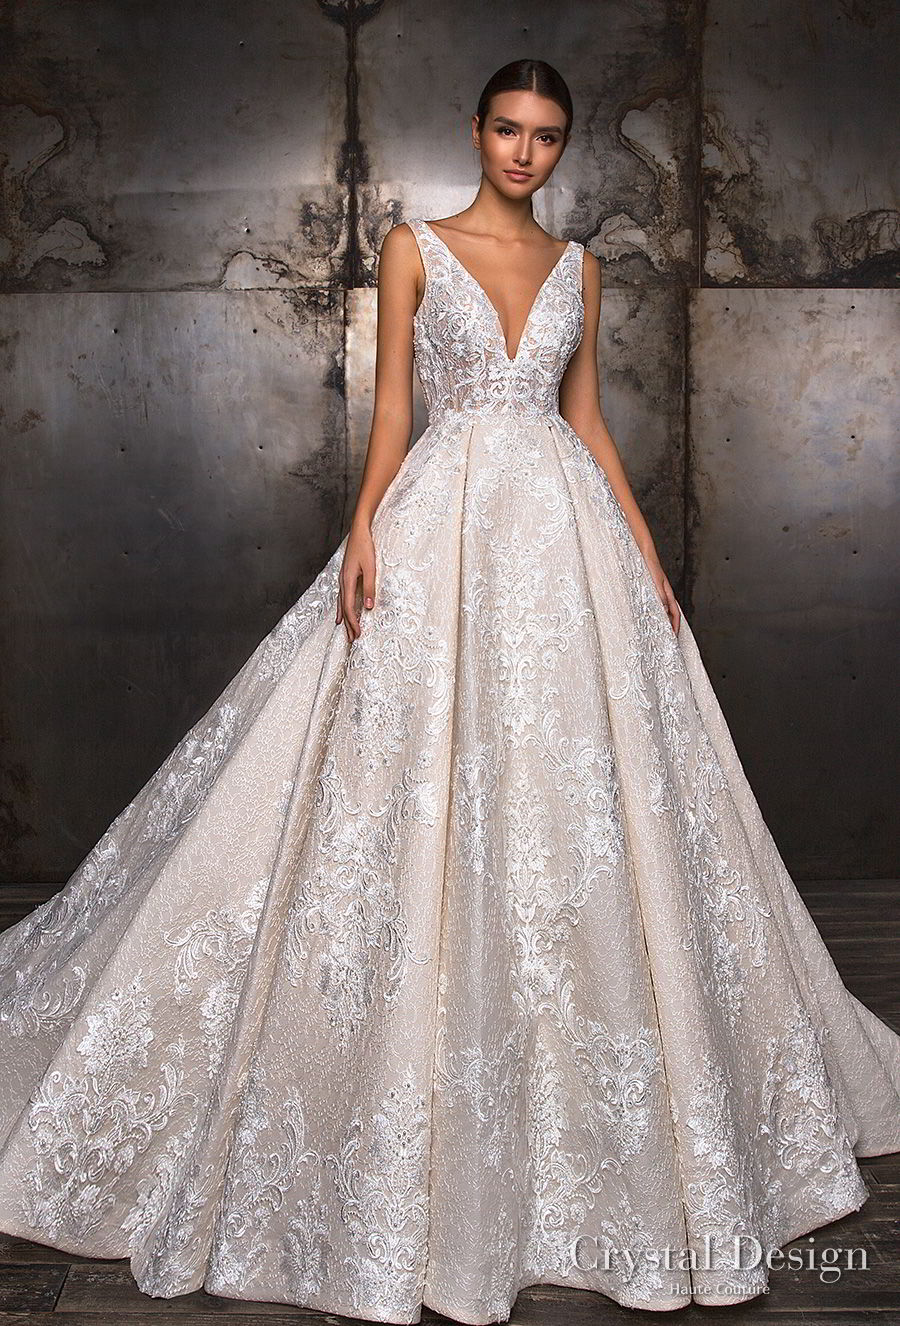 crystal design 2018 sleeveless deep v neck full embellishment princess ball gown a  line wedding dress v back royal train (taffi) mv